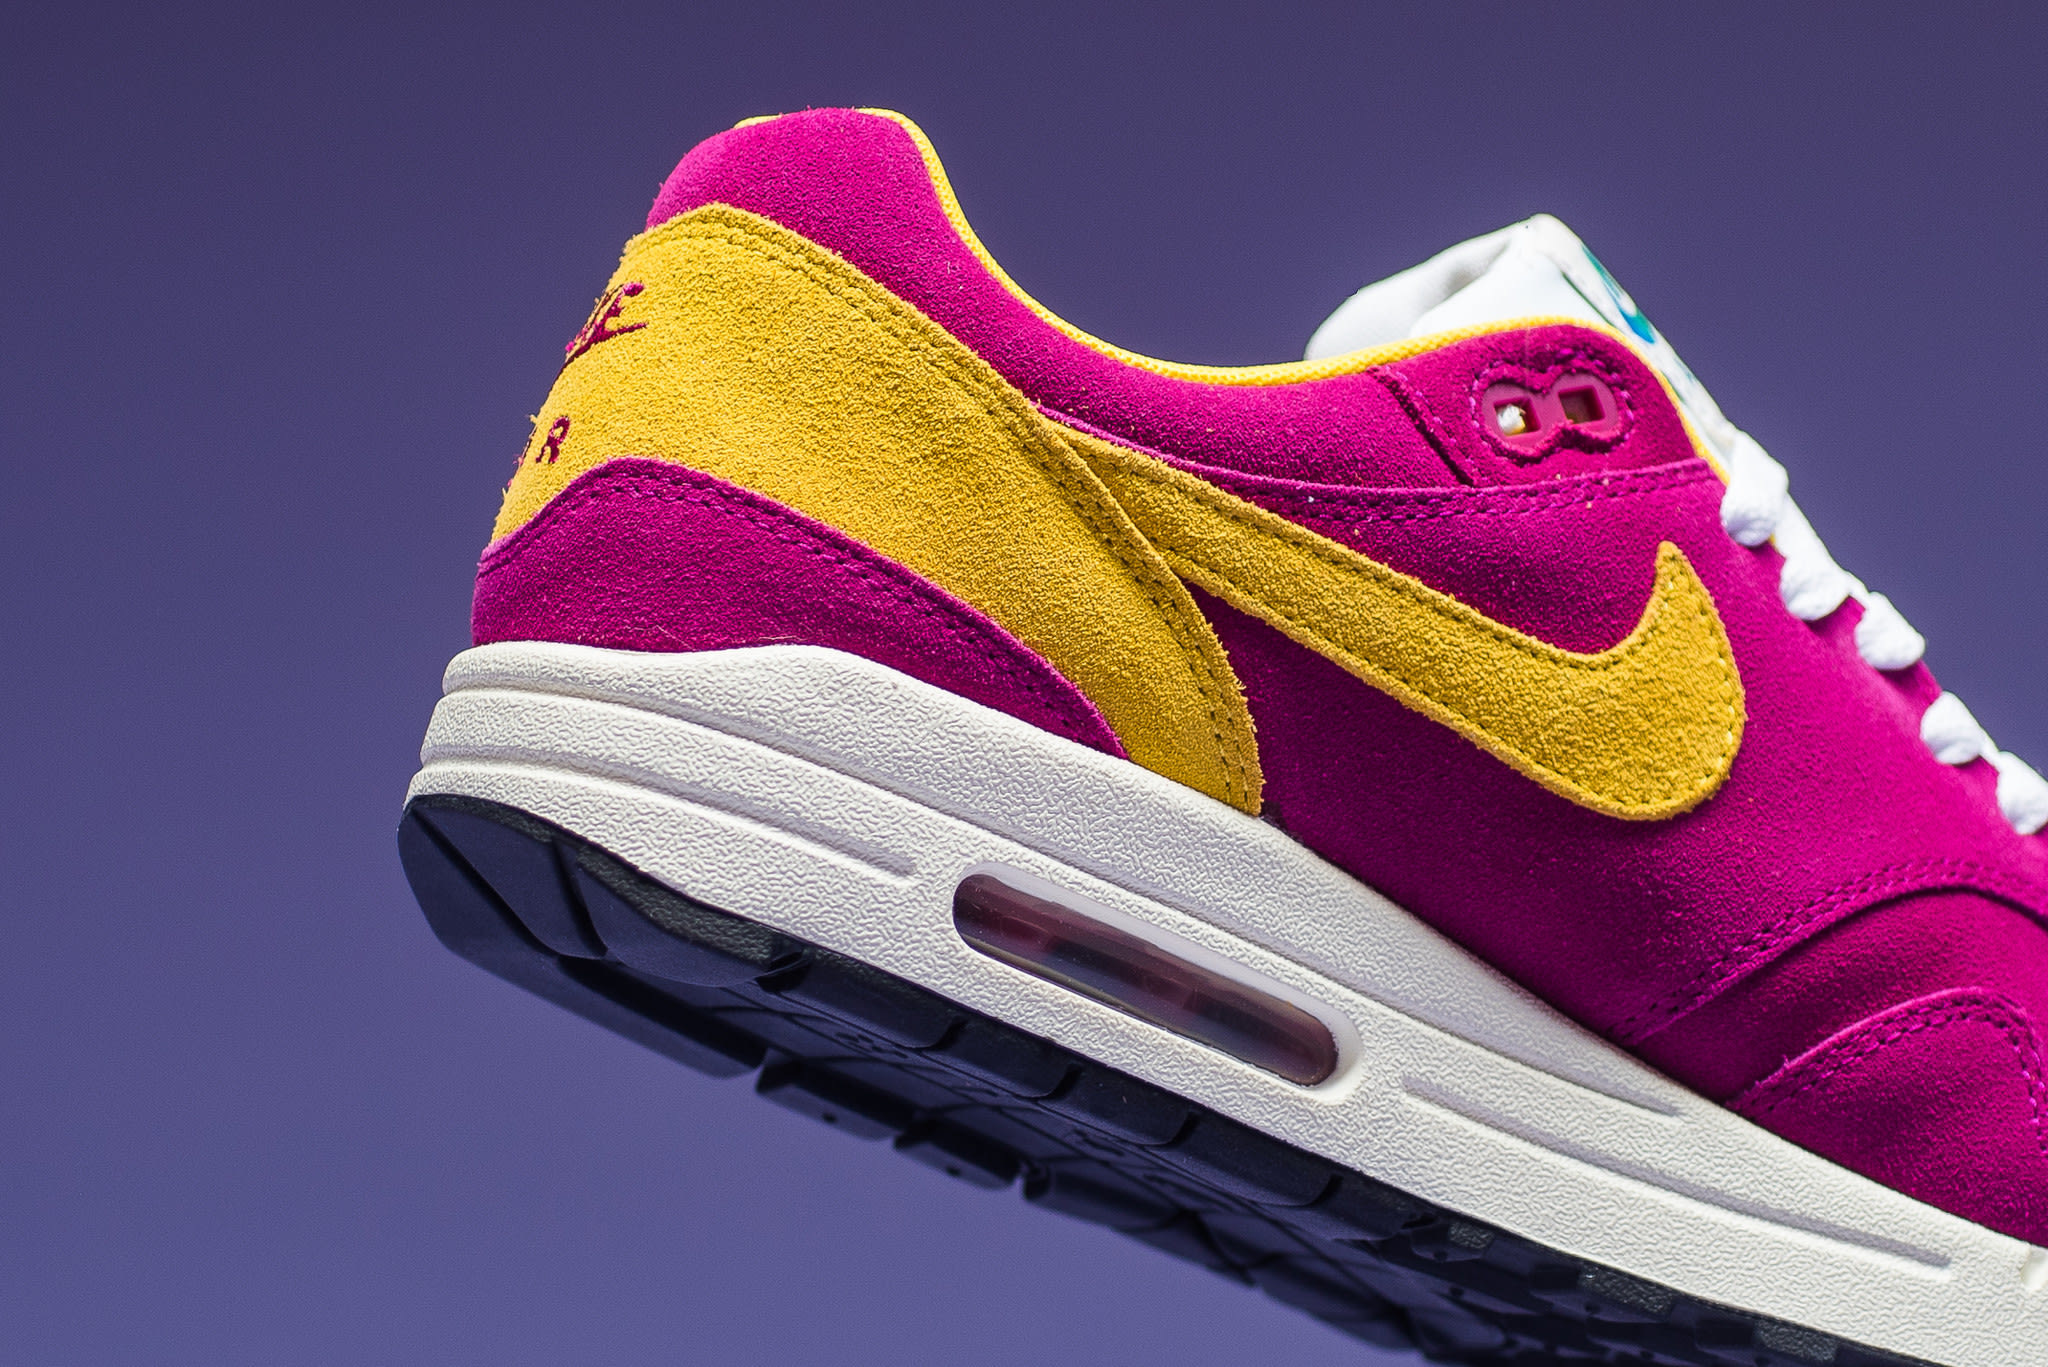 big sale 7f471 ded90 ... low price image via sneaker politics nike air max 1 dynamic berry vivid  sulfur medial ad23f